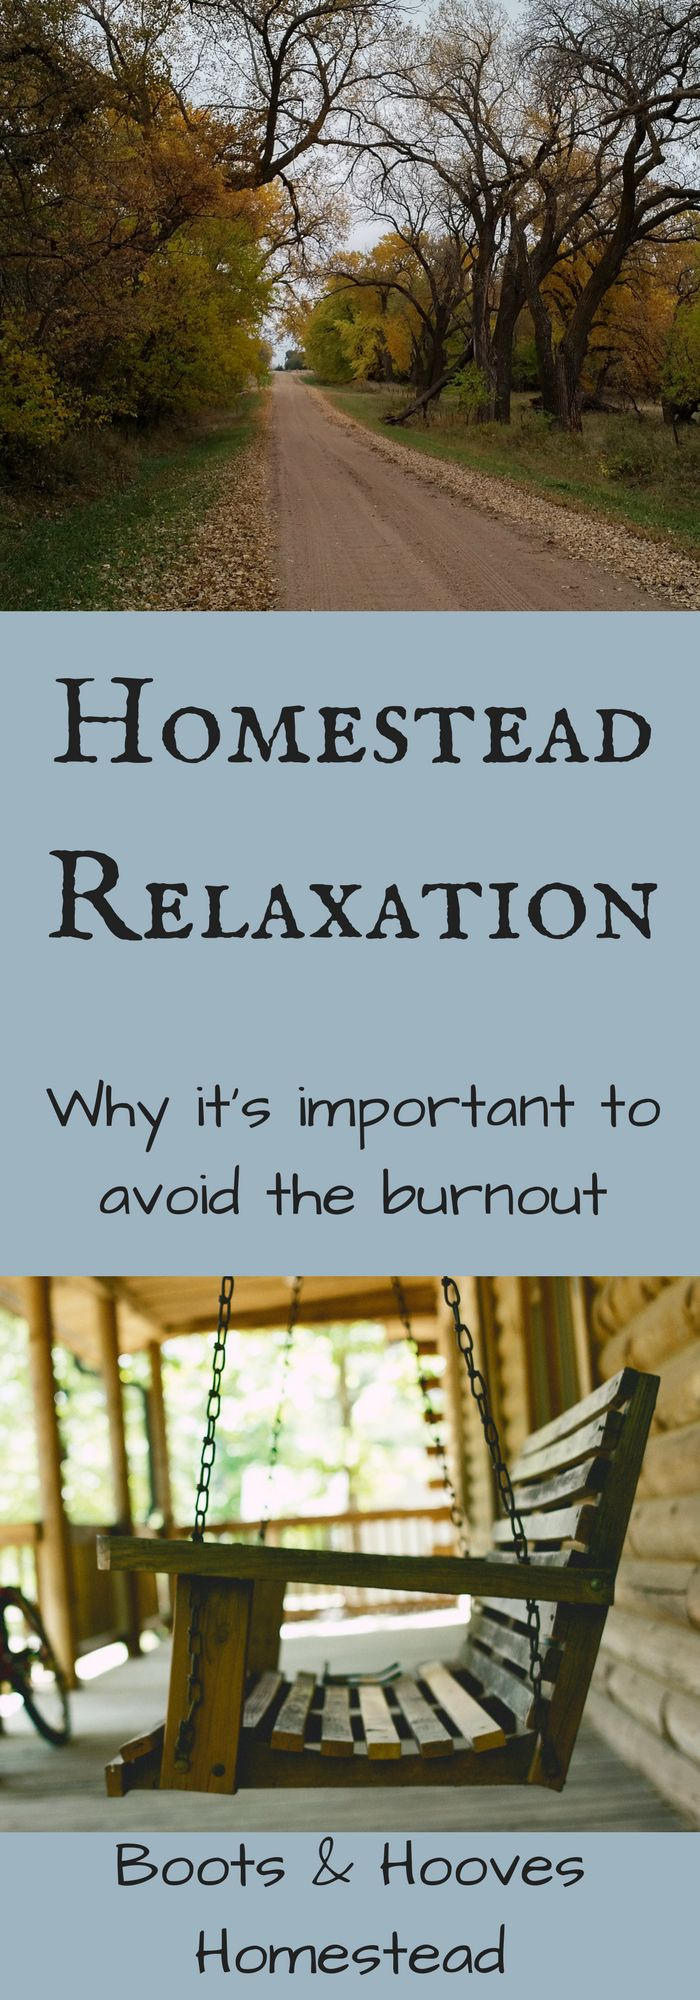 Taking time to rest and relax is vital for your own health and will make you more productive on your homestead, too.